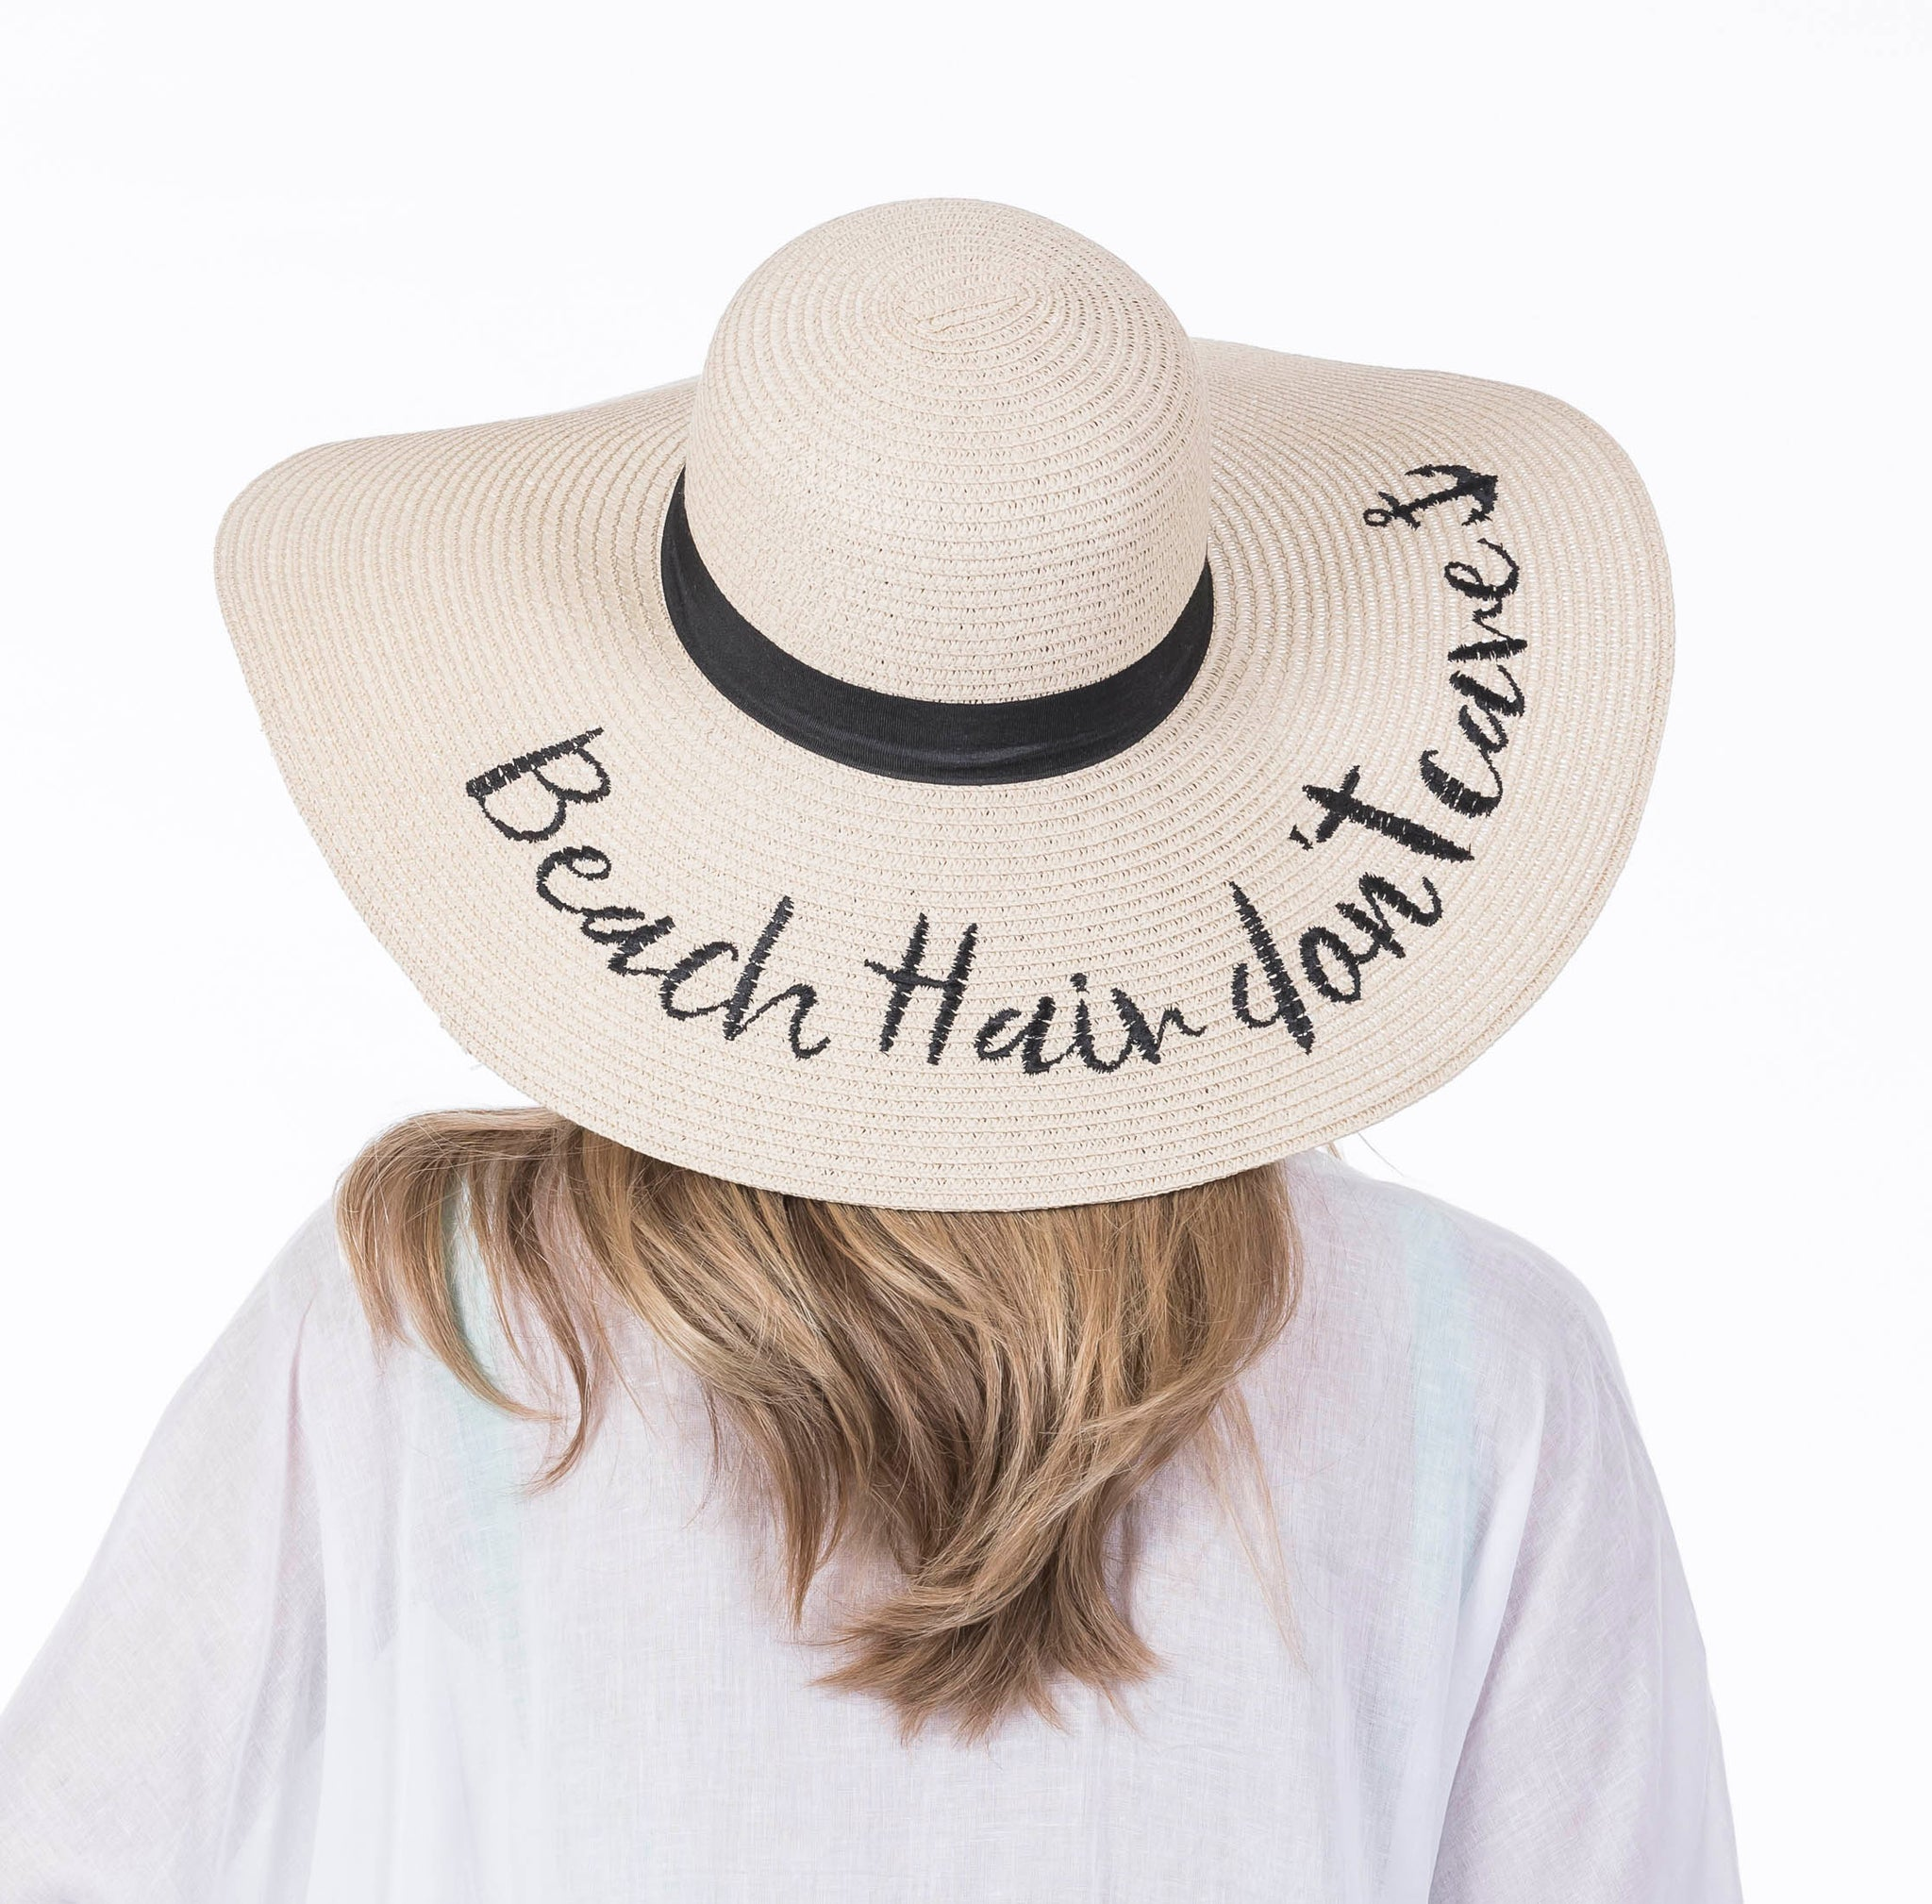 Beach Hair Don't Care Wholesale Sun Hats for Women